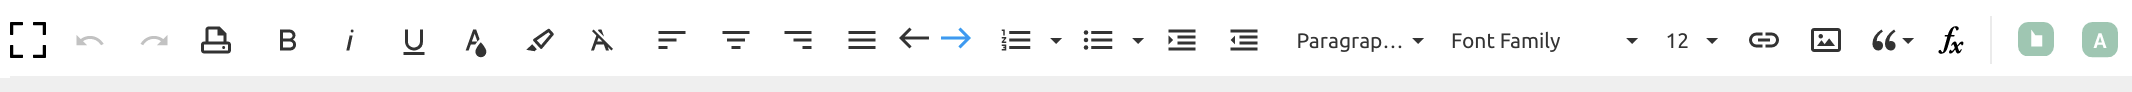 The Notes toolbar.